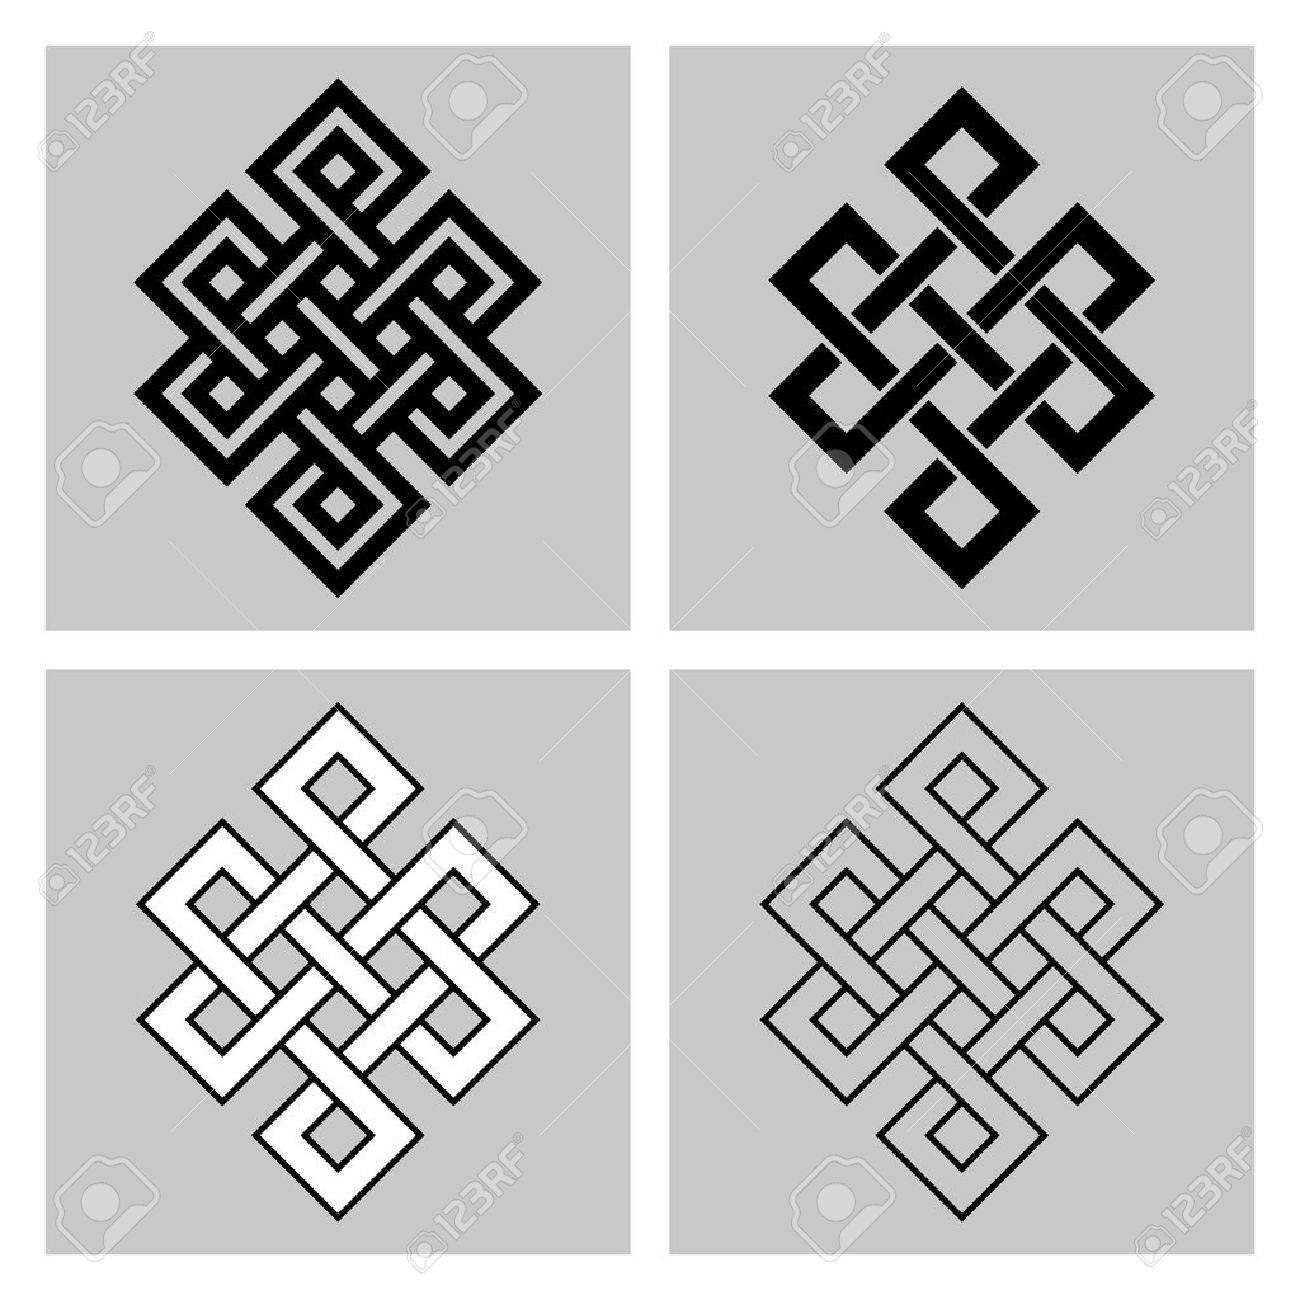 The endless knot sacred symbol of the rebirth in the sacred symbol of the rebirth in the concatenations buddhism stock separated buycottarizona Image collections